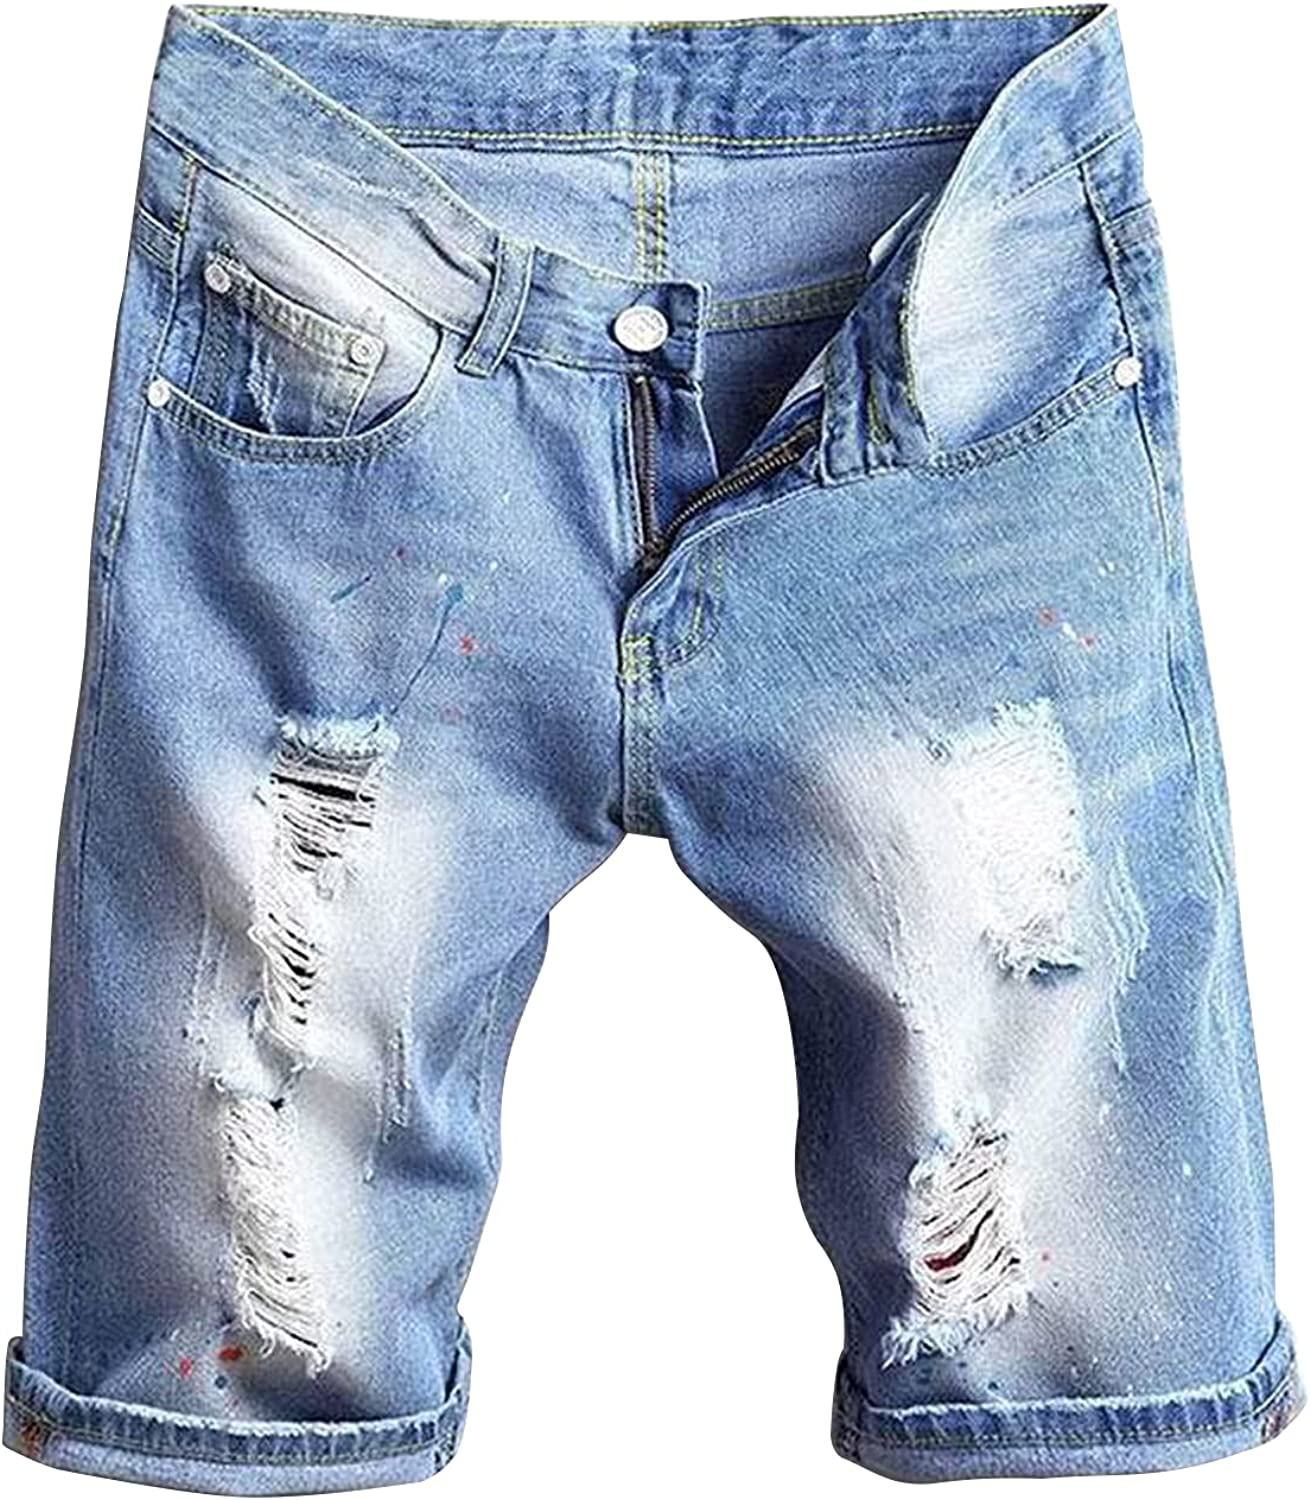 Men's Classic Straight Slim Ripped Jeans Short Distressed Washed Denim Short-pant Casual Fashion Stretchy Jean Shorts